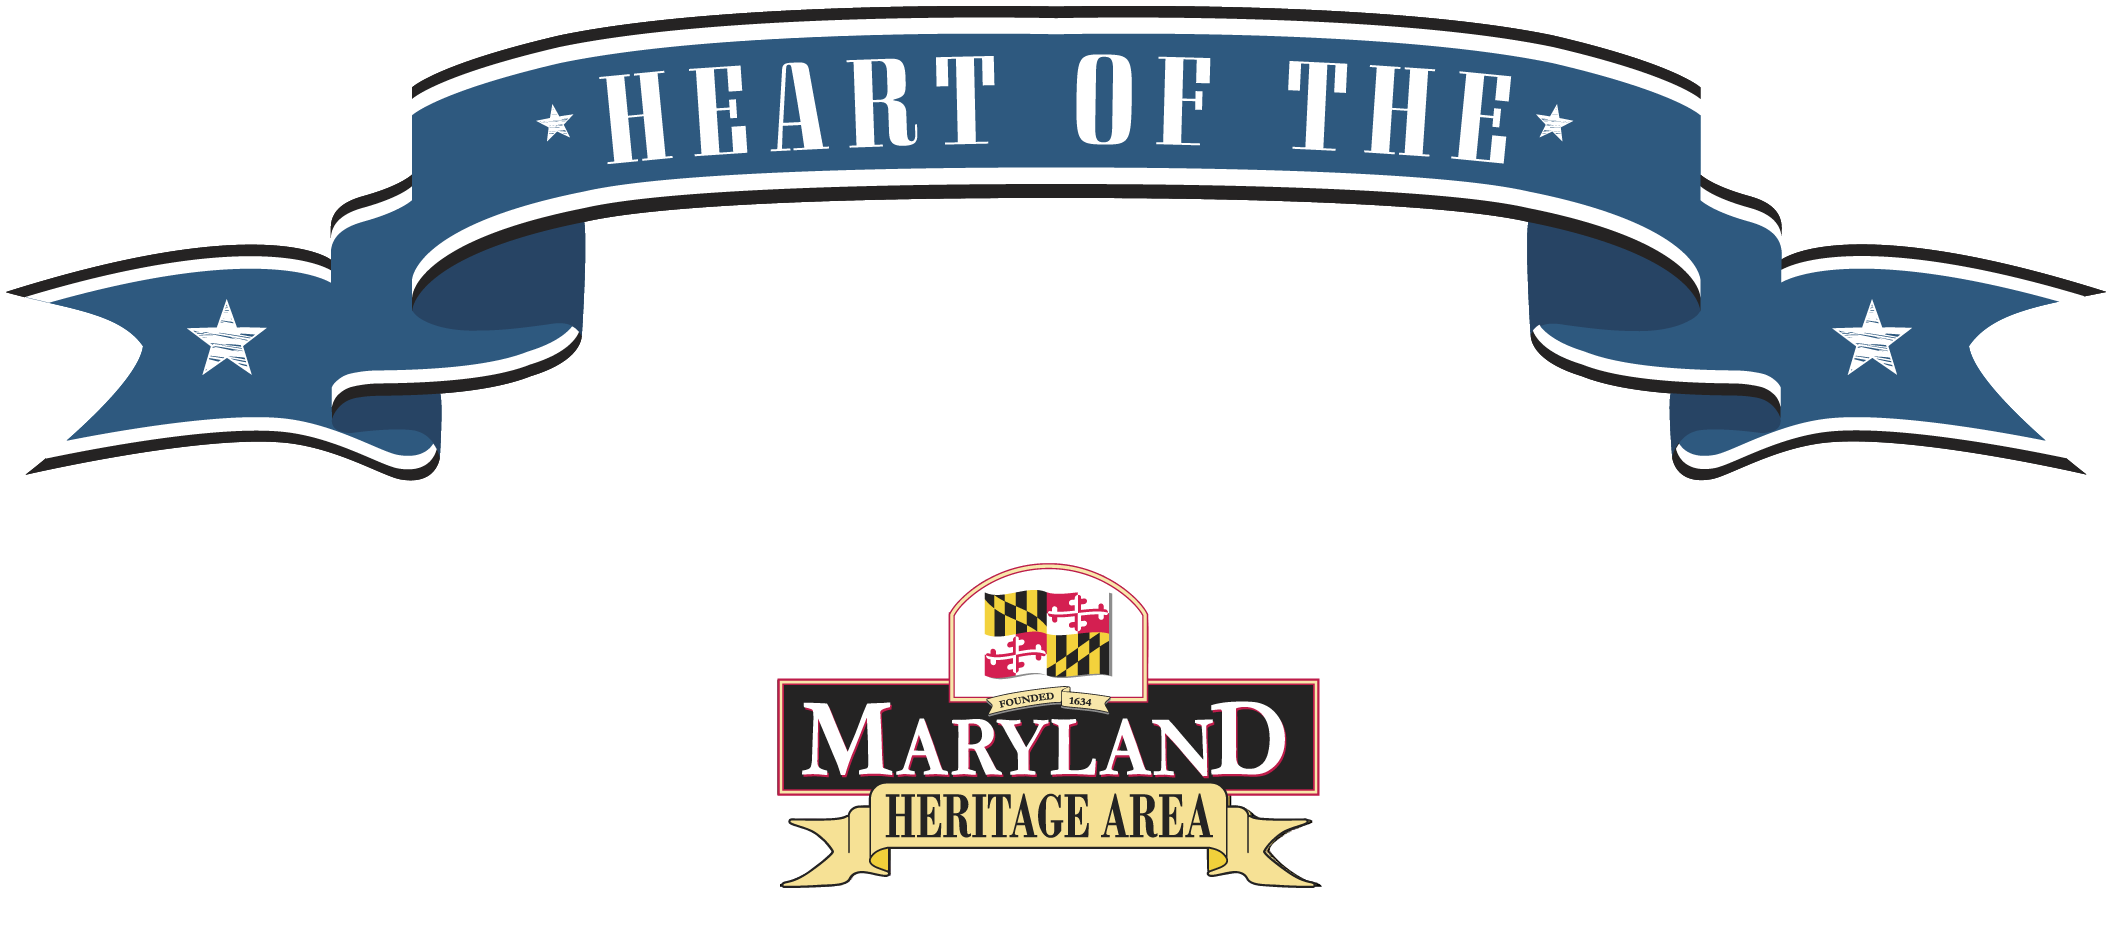 HCWHA_Maryland-Heritage-Area_Logo